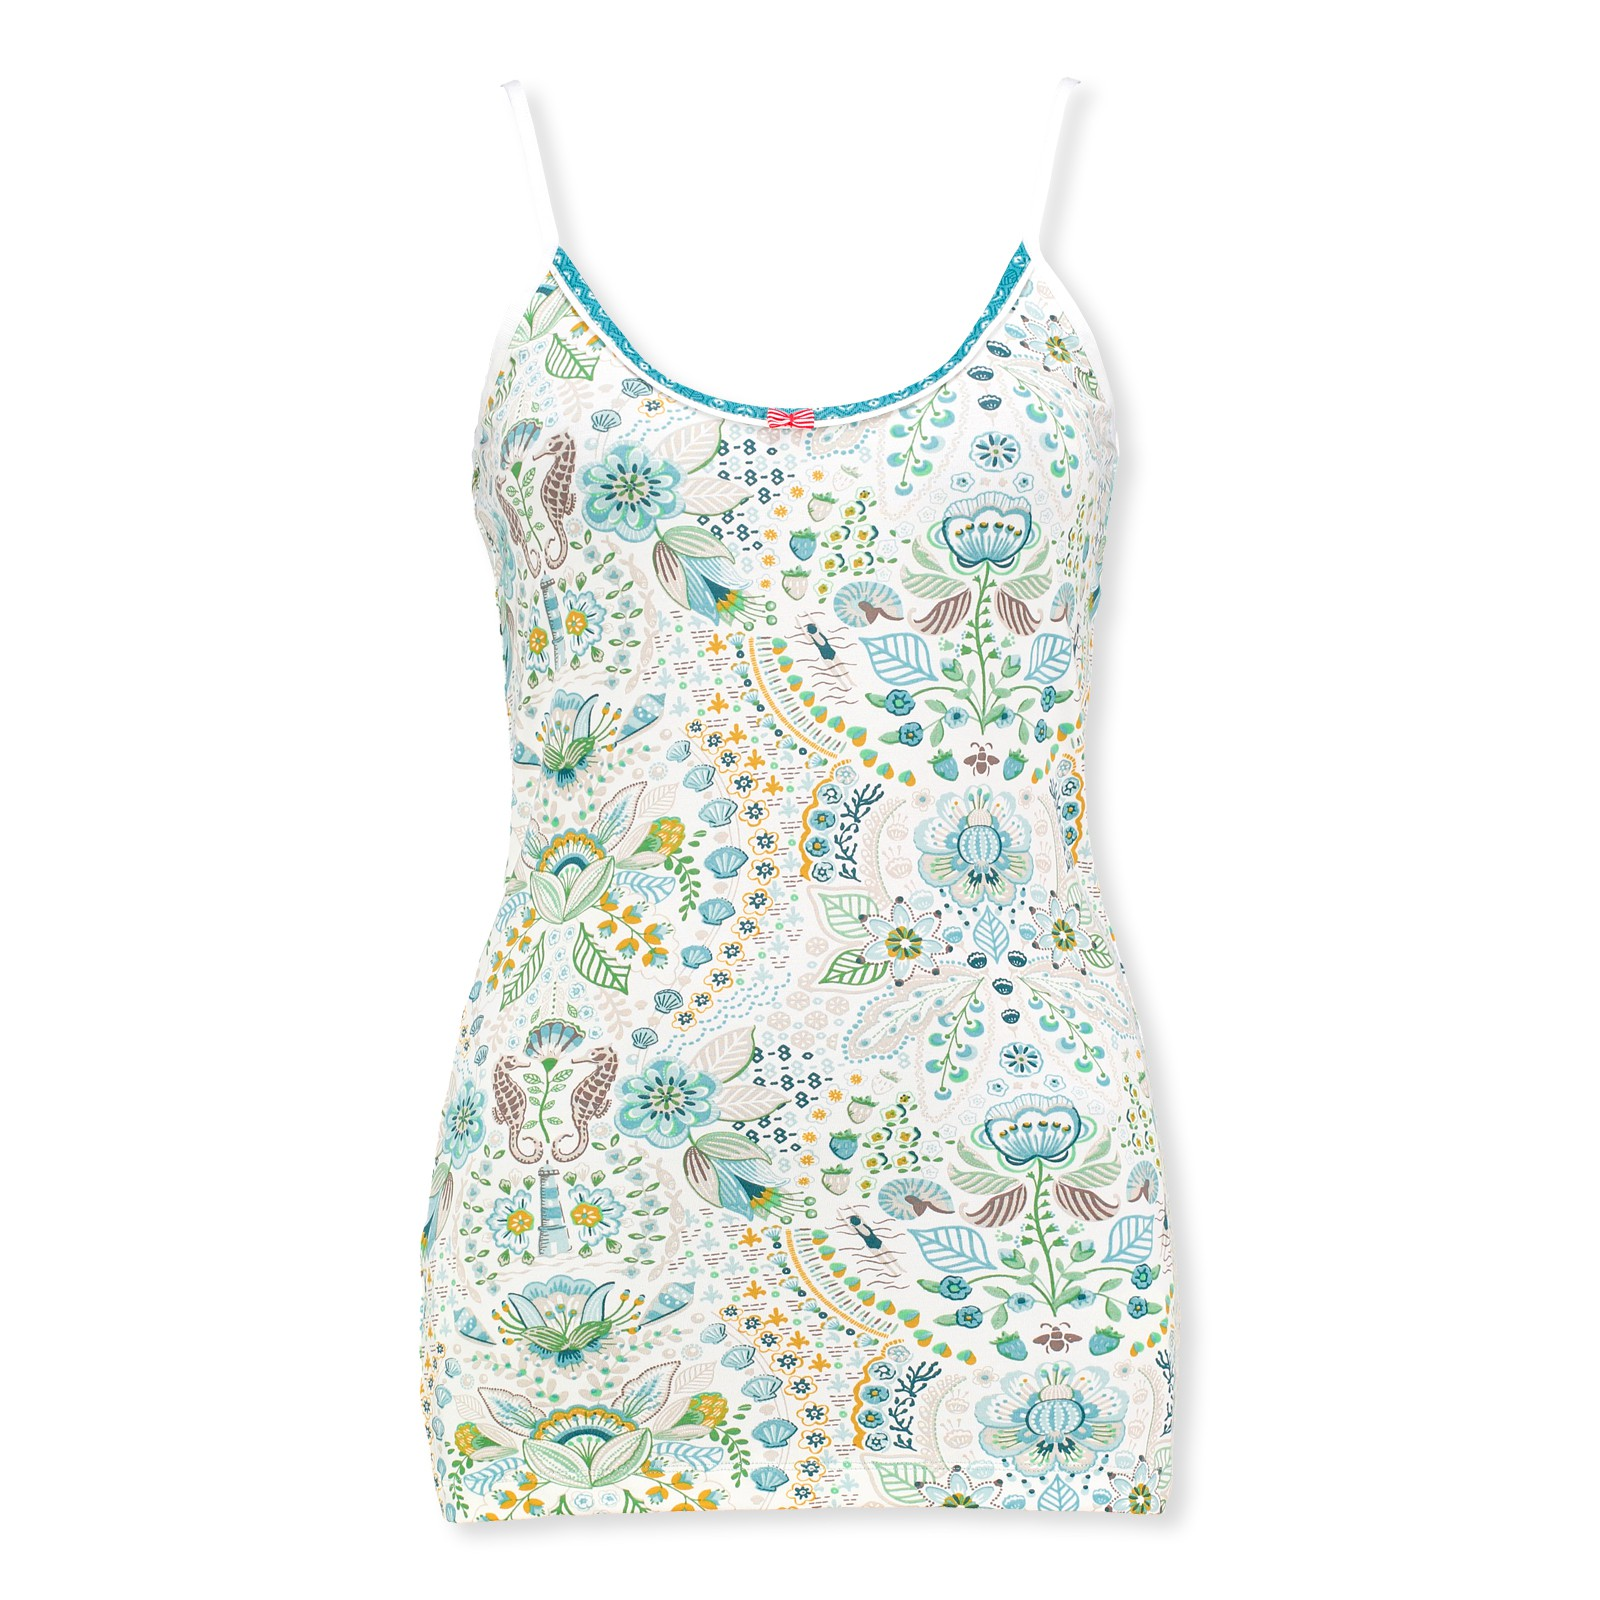 PiP Studio Damen Top sleeveless Pyjama Oberteil Spaghettiträger Tom Sea Stitch S M L XL 260560 in blue vergrößern